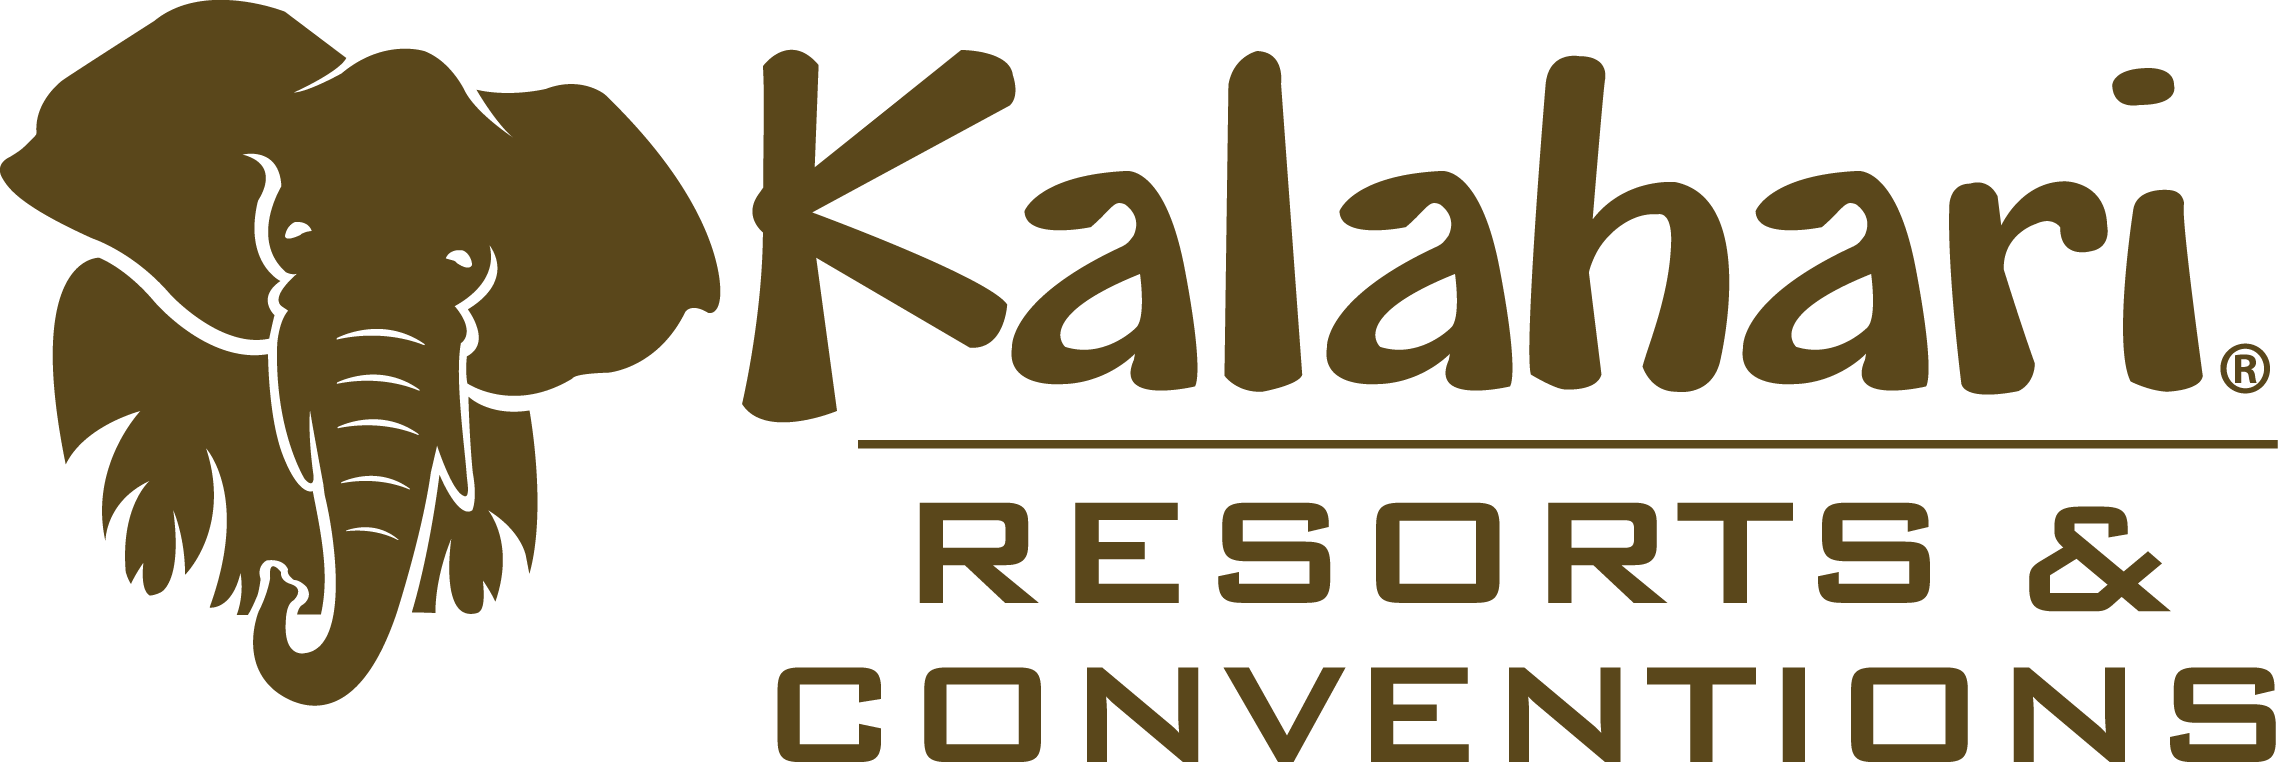 It's a great time to take a multigenerational vacation! Visit Kalahari Resort for a special $109 a night deal.